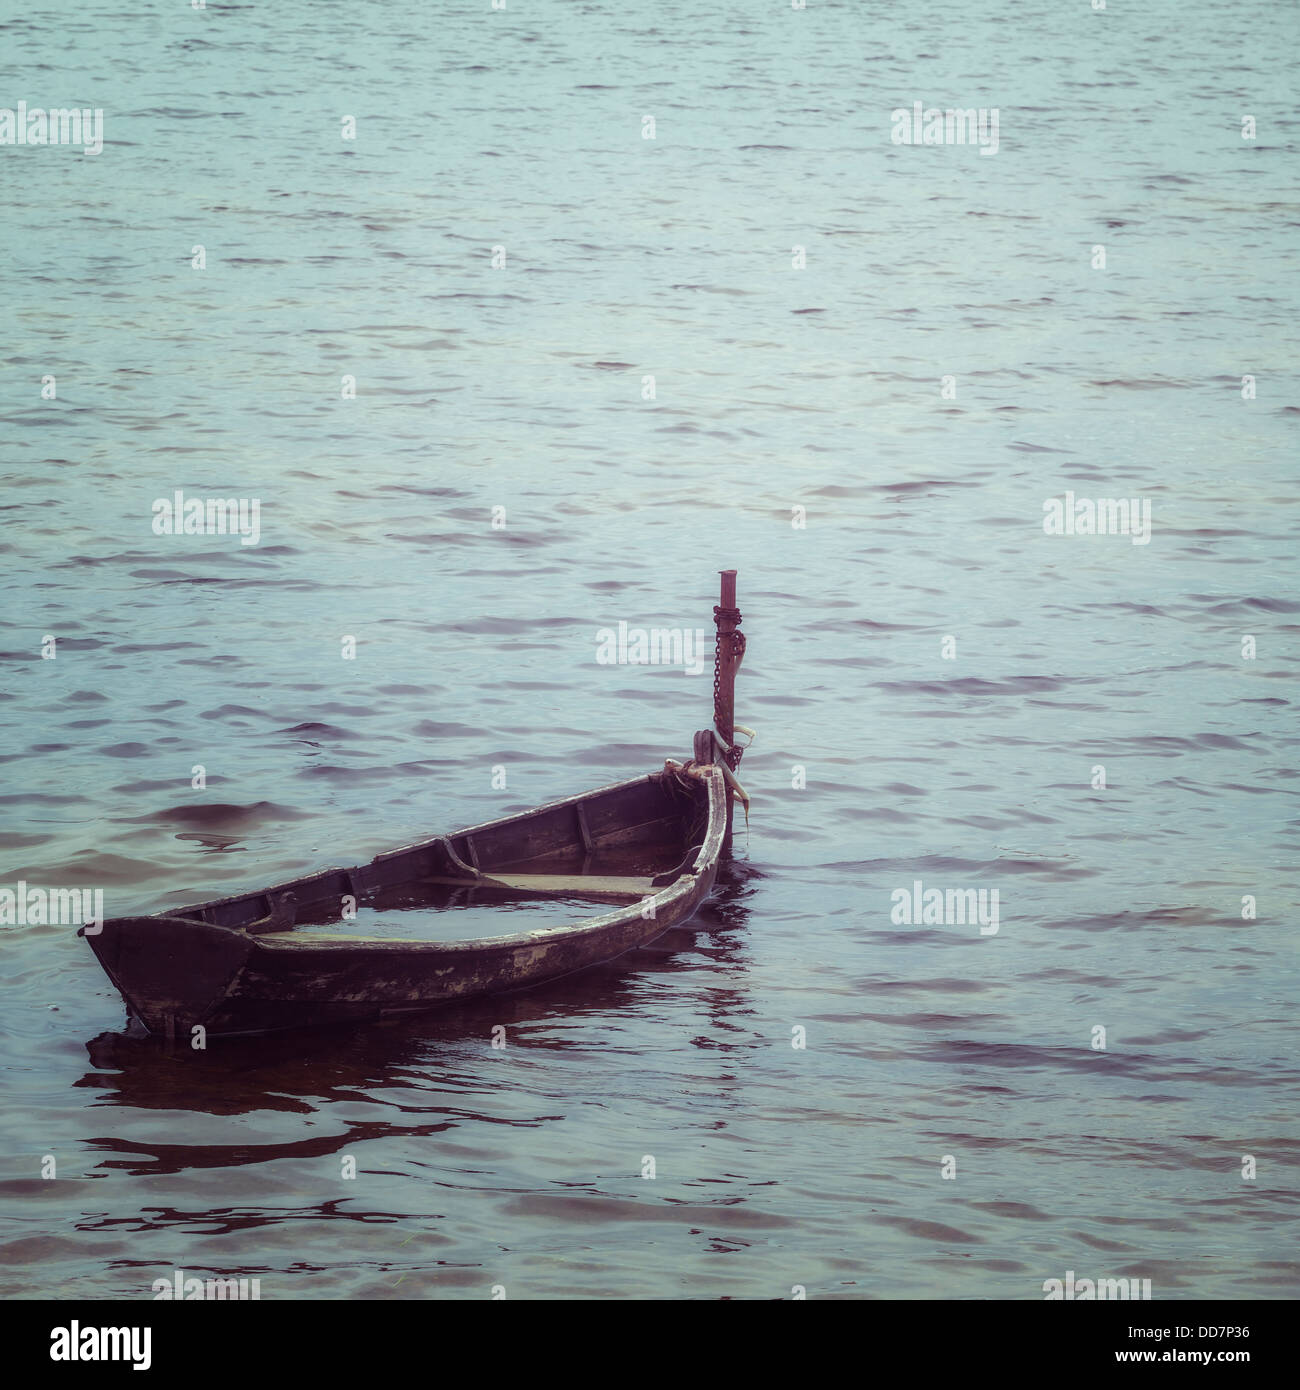 and old, almost sunken wooden boat - Stock Image